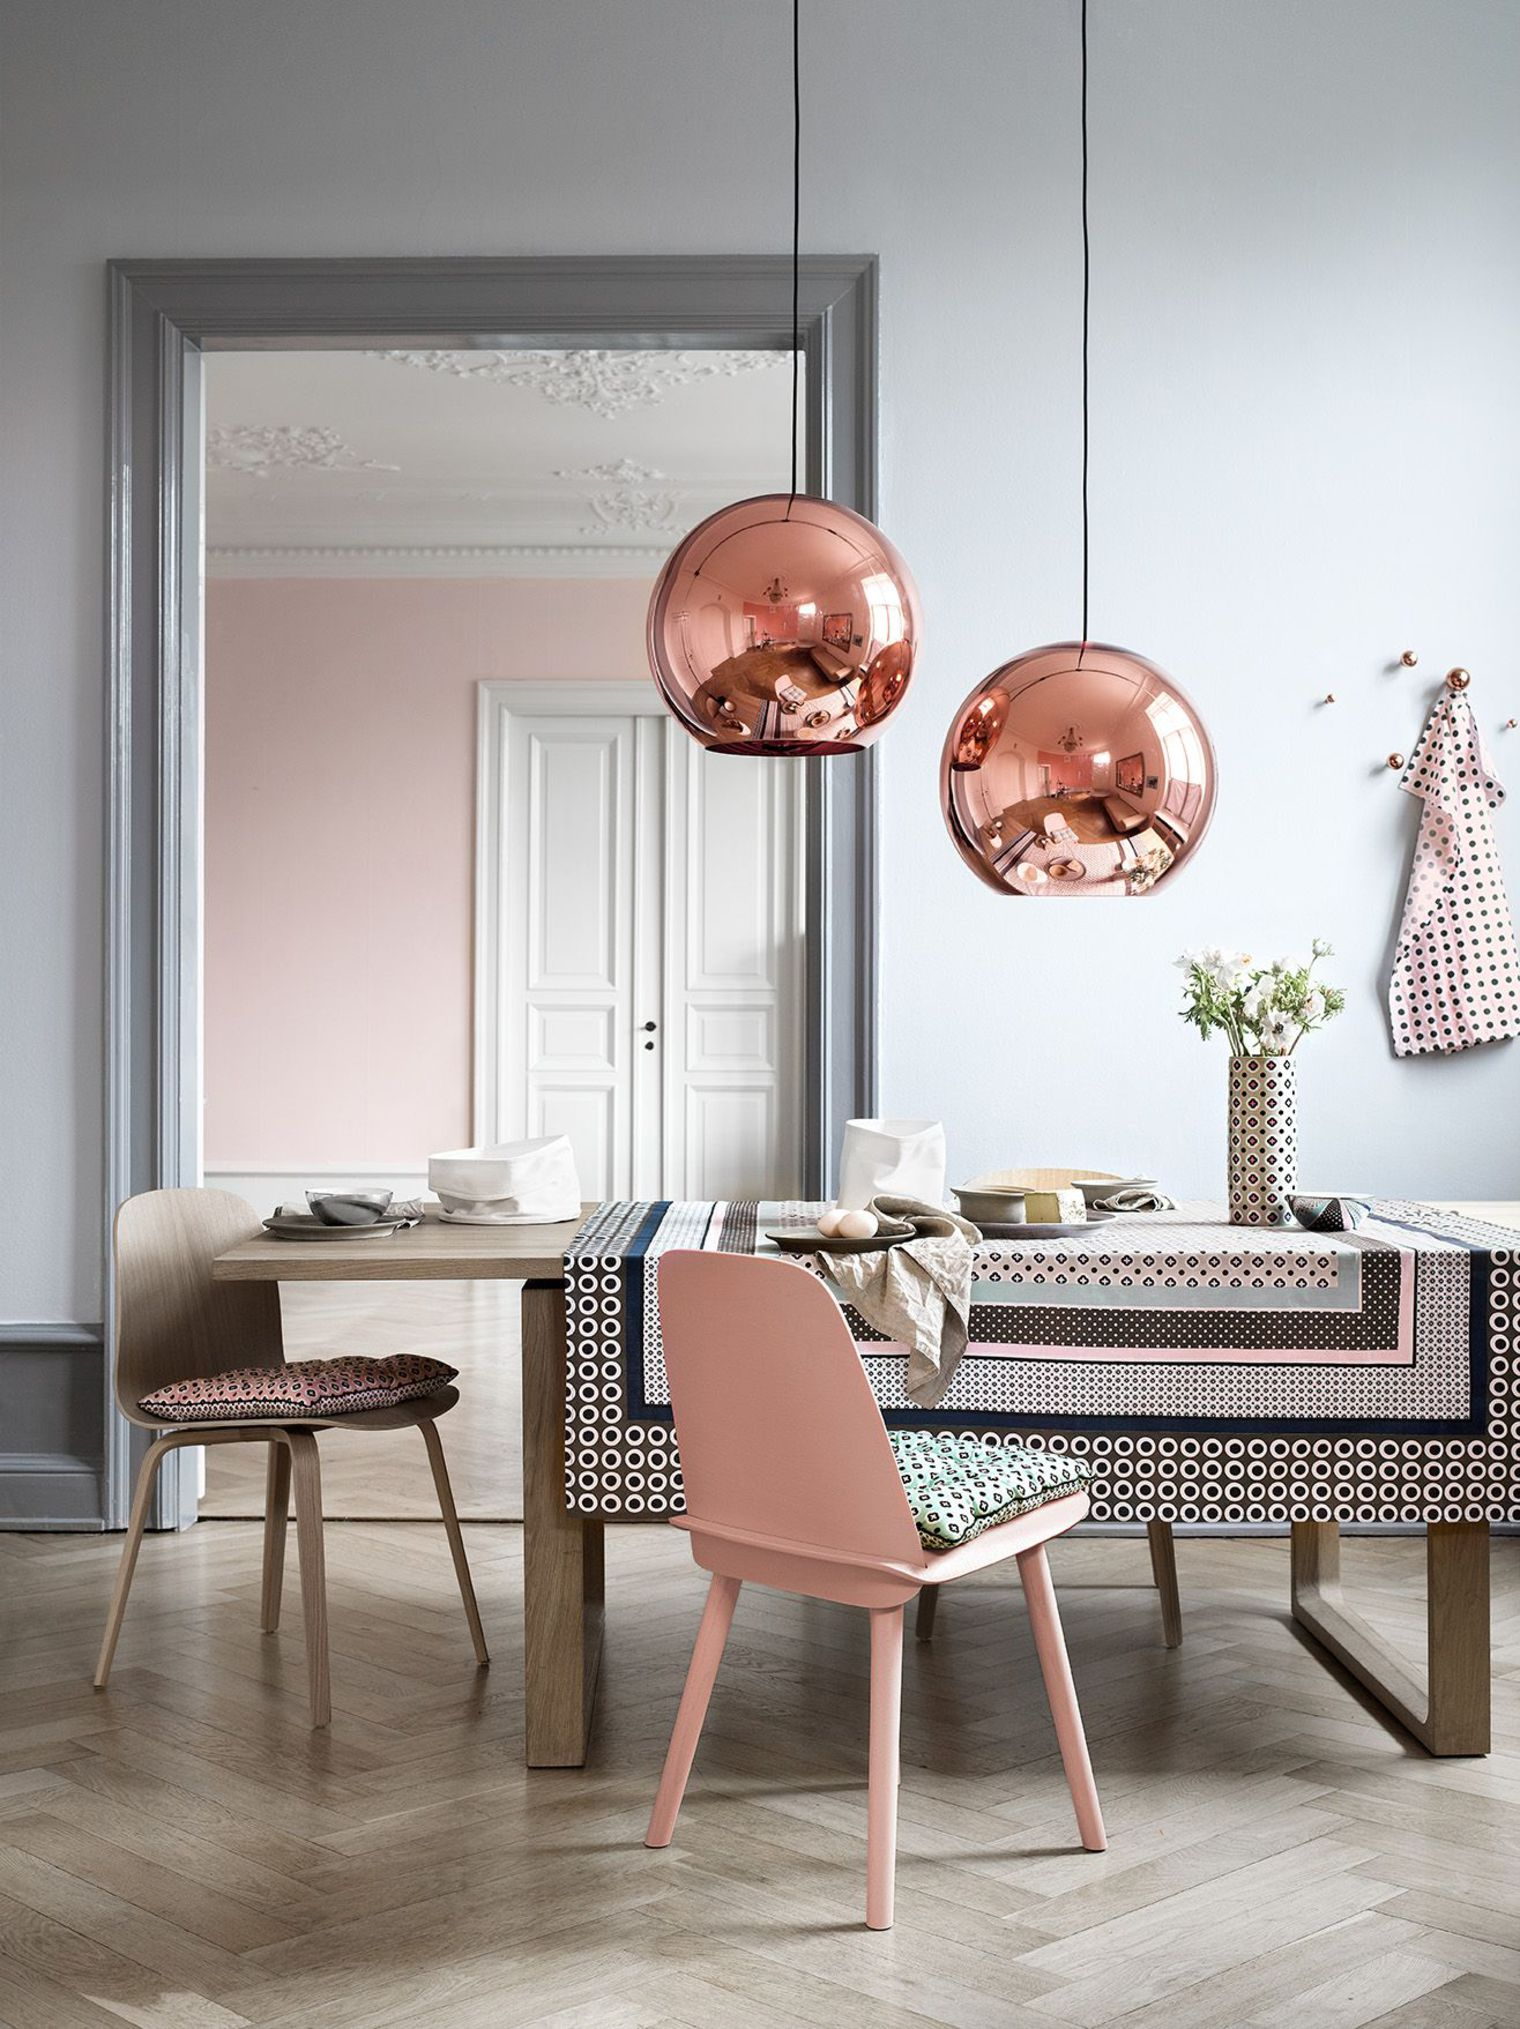 10 Copper Mid-Century Lamps to Inspire your Home Decor